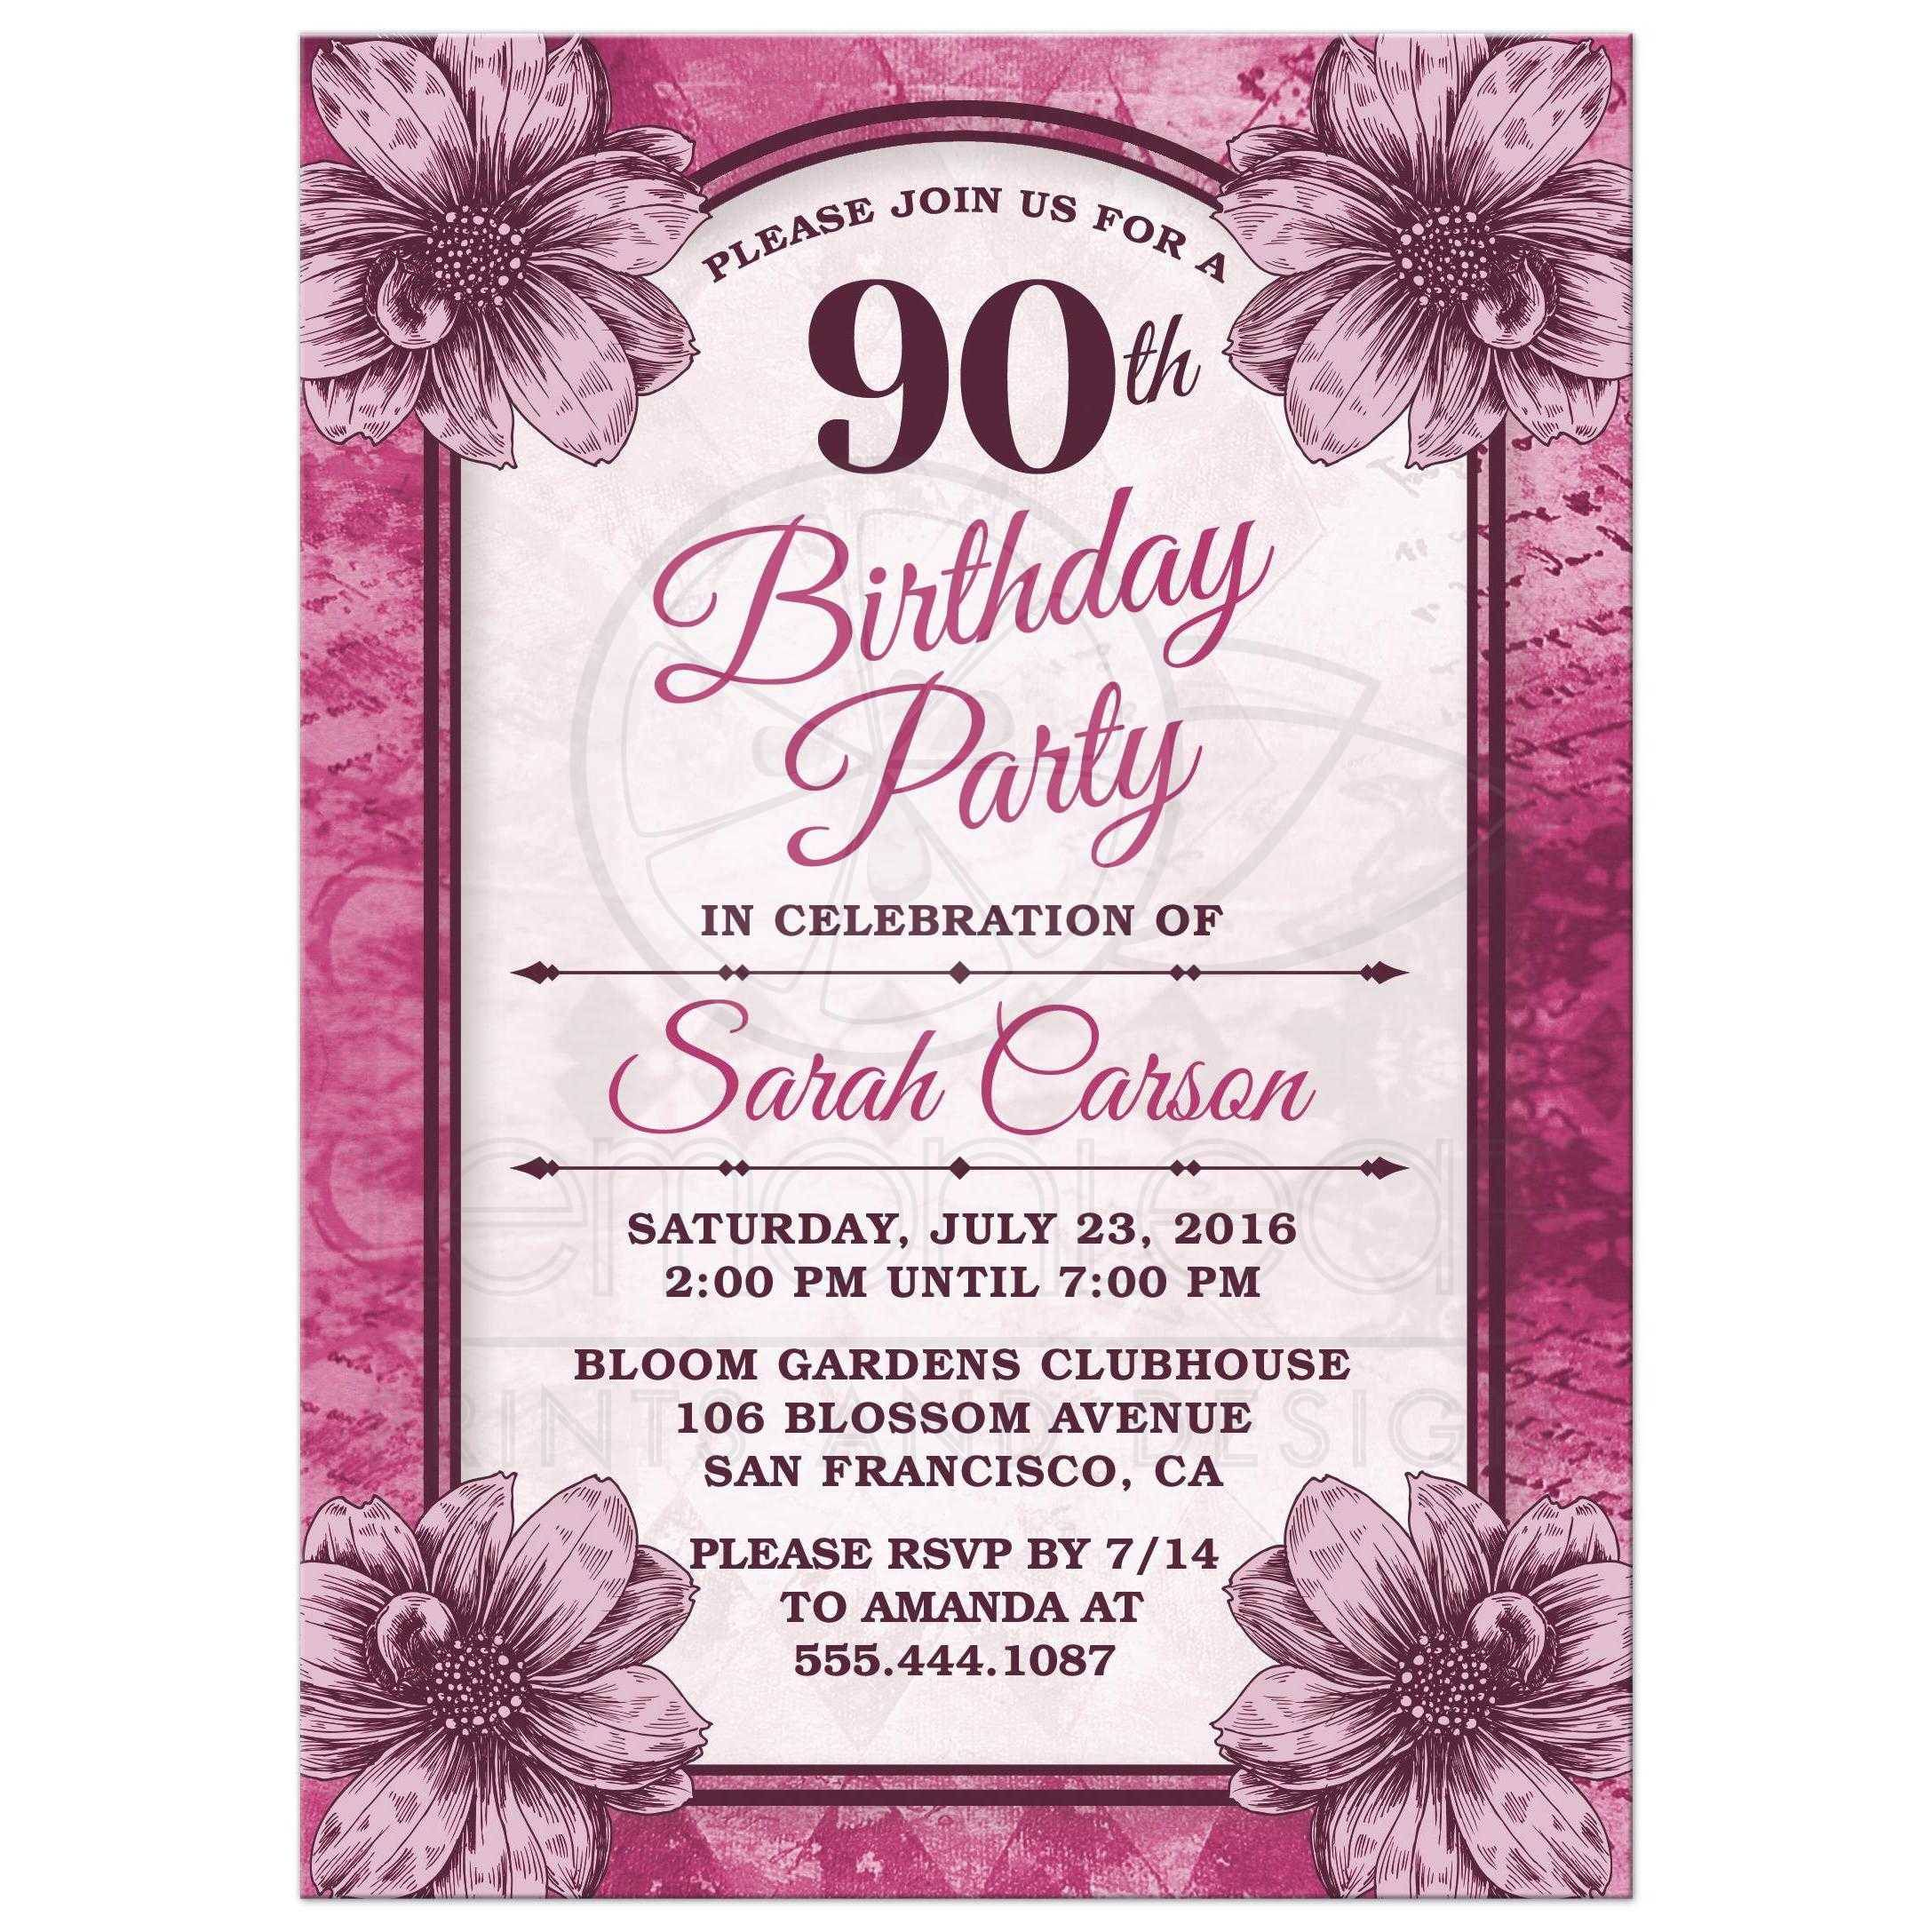 Superior 90th Birthday Party Invitations Templates Free To Birthday Invitation Templates Free Word